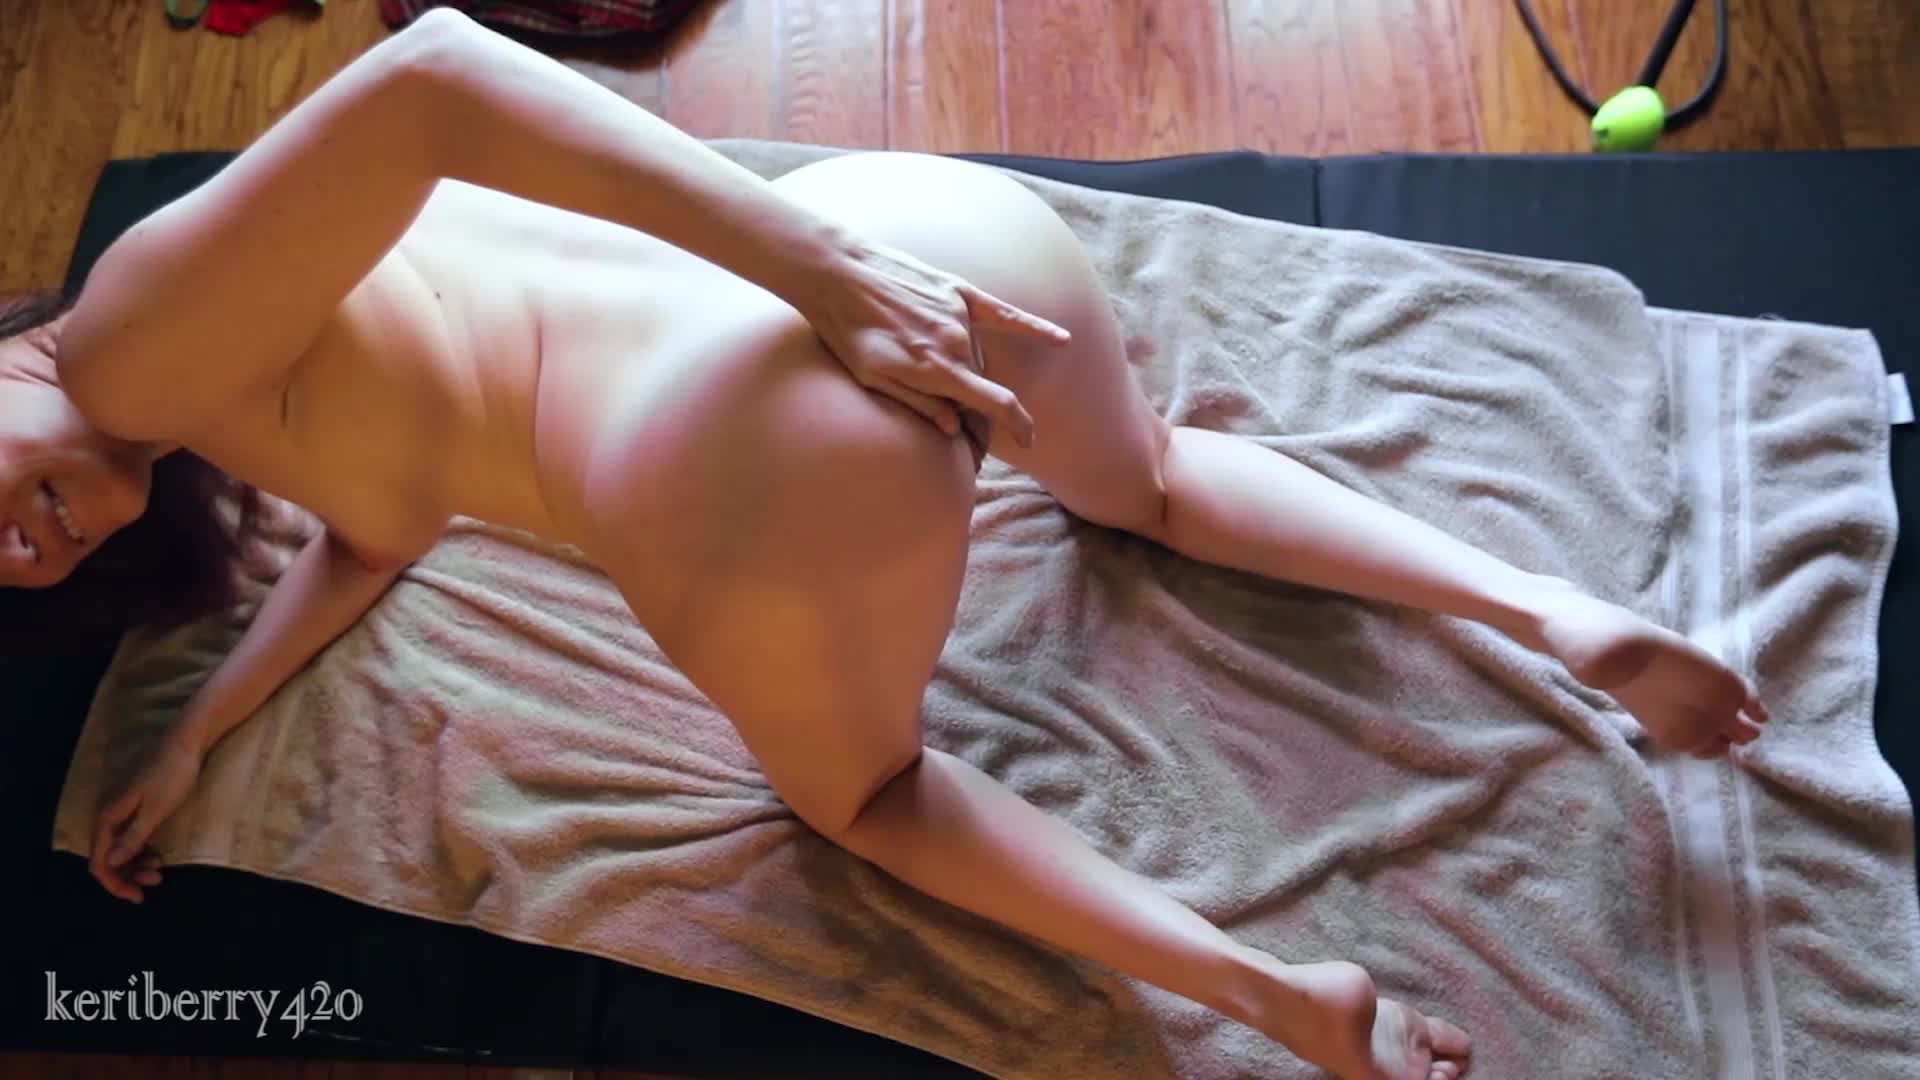 Boy Girl Anal From Above